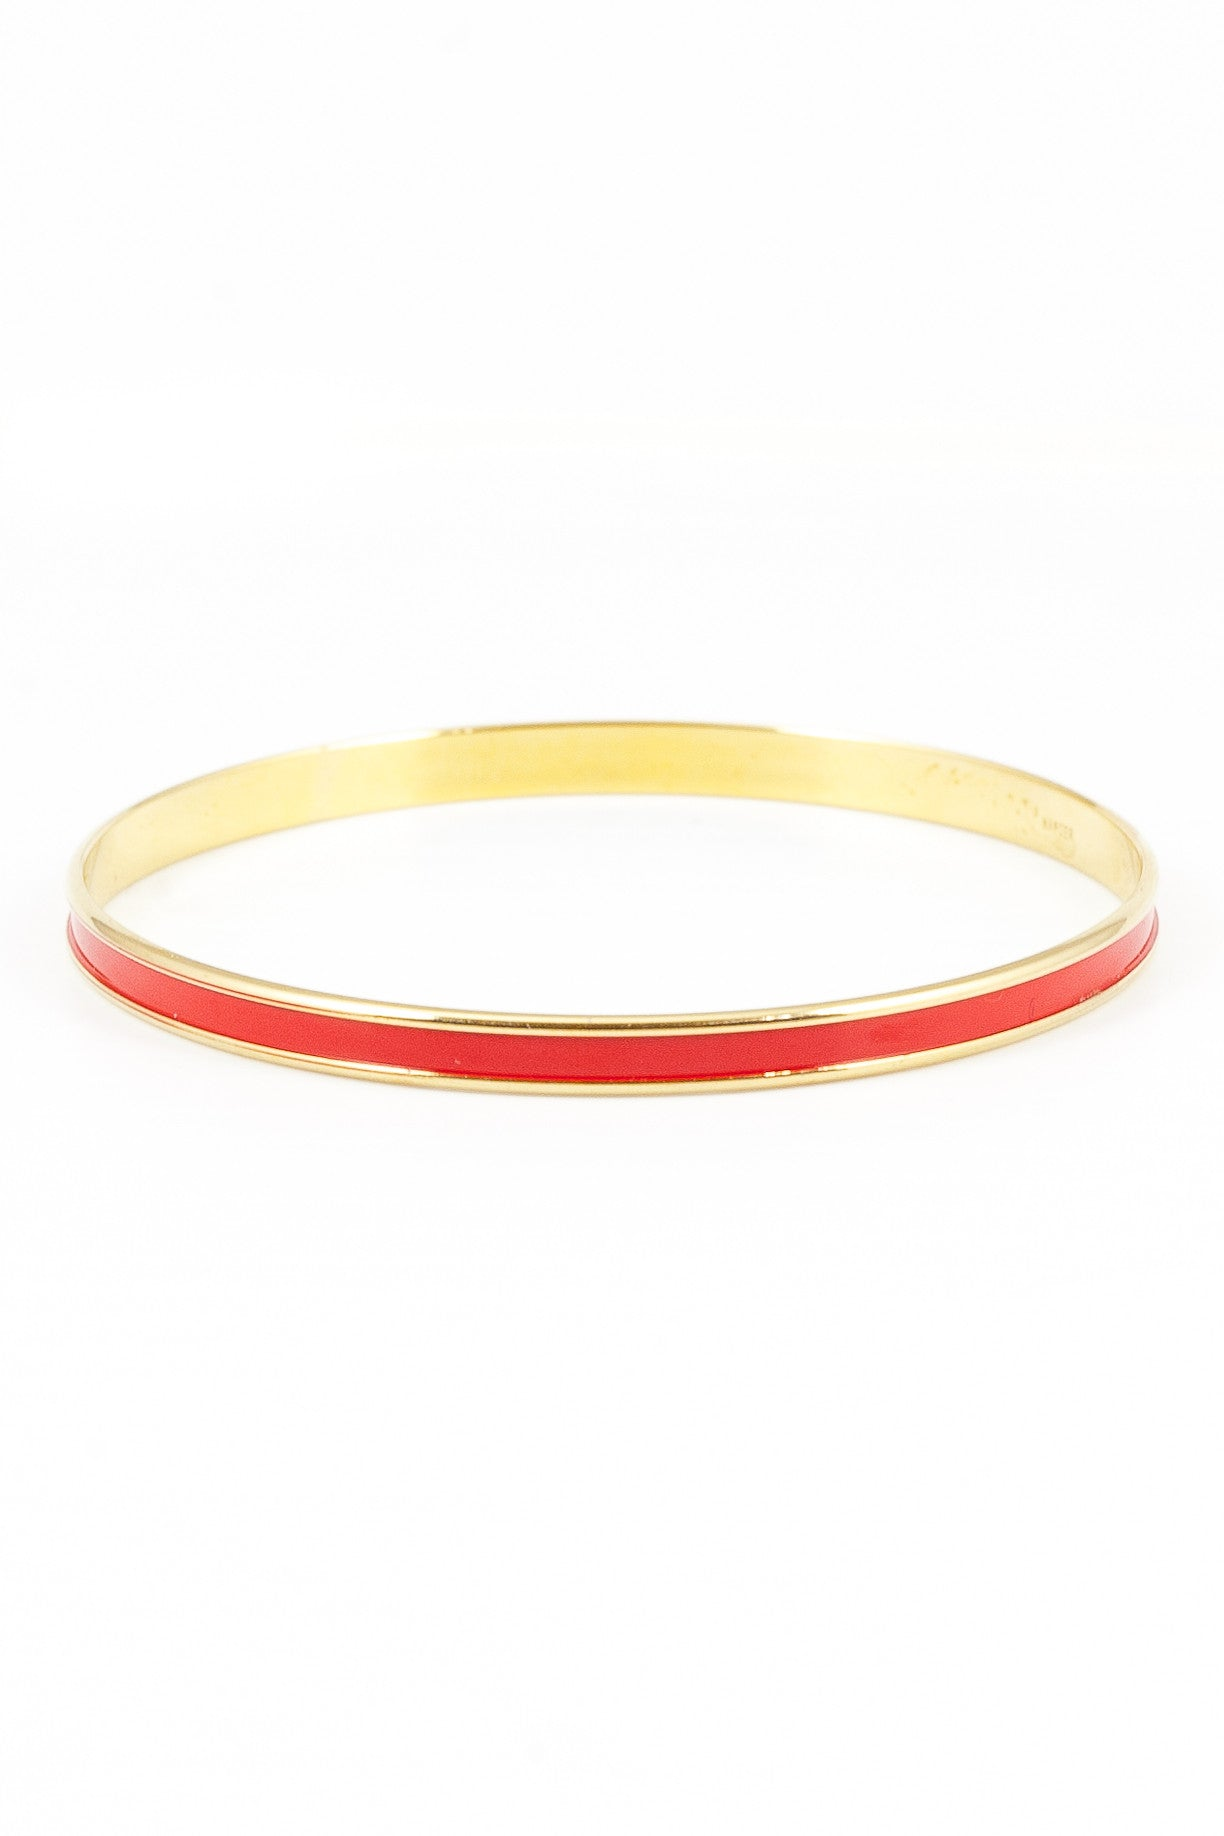 50's__Napier__Skinny Red Enamel Bangle